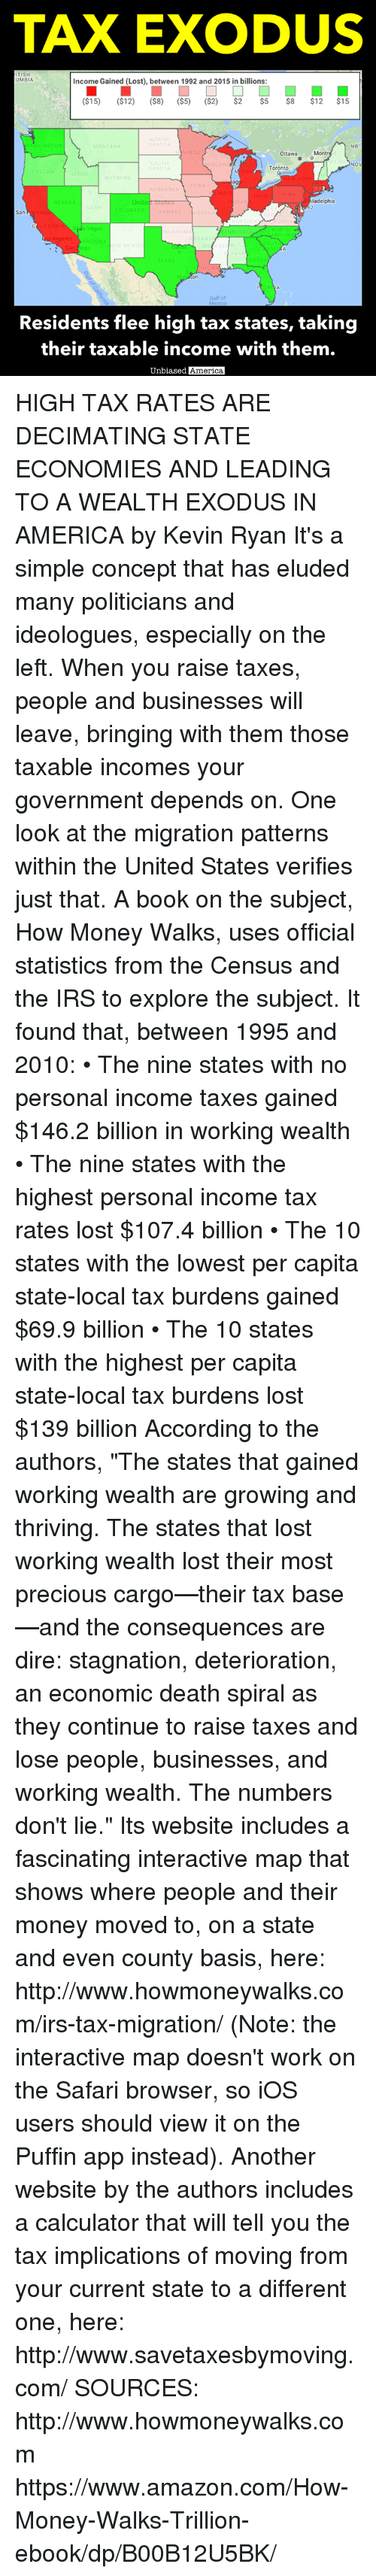 """Exodus: TAX EXODUS  ITISH  UMBIA  Income Gained (Lost), between 1992 and 2015 in billions:  ($15)  ($12)  ($8) ($5) ($2)  $2  $5  $8  $12  $15  NORTH  DAKOTA  NB  NNESO  Montr  Ottawa  SOUTH  VISCON  NOV  Toronto  DAKO  OREGON  DAHO  NEBRASKA  PENN  Unite  States  iladelphia  NEVADA  LORADO  San  KANSAS  SSOUR  LIFORN  s Vegas  NORTH  ENNESSEE  AROL  geles  ARIZONA  TEXAS  EORG  On  FOR  Gulf of  Residents flee high tax states, taking  their taxable income with them.  biased America, HIGH TAX RATES ARE DECIMATING STATE ECONOMIES AND LEADING TO A WEALTH EXODUS IN AMERICA by Kevin Ryan  It's a simple concept that has eluded many politicians and ideologues, especially on the left.  When you raise taxes, people and businesses will leave, bringing with them those taxable incomes your government depends on.  One look at the migration patterns within the United States verifies just that.  A book on the subject, How Money Walks, uses official statistics from the Census and the IRS to explore the subject.  It found that, between 1995 and 2010:  • The nine states with no personal income taxes gained $146.2 billion in working wealth • The nine states with the highest personal income tax rates lost $107.4 billion • The 10 states with the lowest per capita state-local tax burdens gained $69.9 billion • The 10 states with the highest per capita state-local tax burdens lost $139 billion  According to the authors, """"The states that gained working wealth are growing and thriving. The states that lost working wealth lost their most precious cargo—their tax base—and the consequences are dire: stagnation, deterioration, an economic death spiral as they continue to raise taxes and lose people, businesses, and working wealth. The numbers don't lie.""""  Its website includes a fascinating interactive map that shows where people and their money moved to, on a state and even county basis, here:  http://www.howmoneywalks.com/irs-tax-migration/ (Note: the interactive map doesn't work on the Safar"""